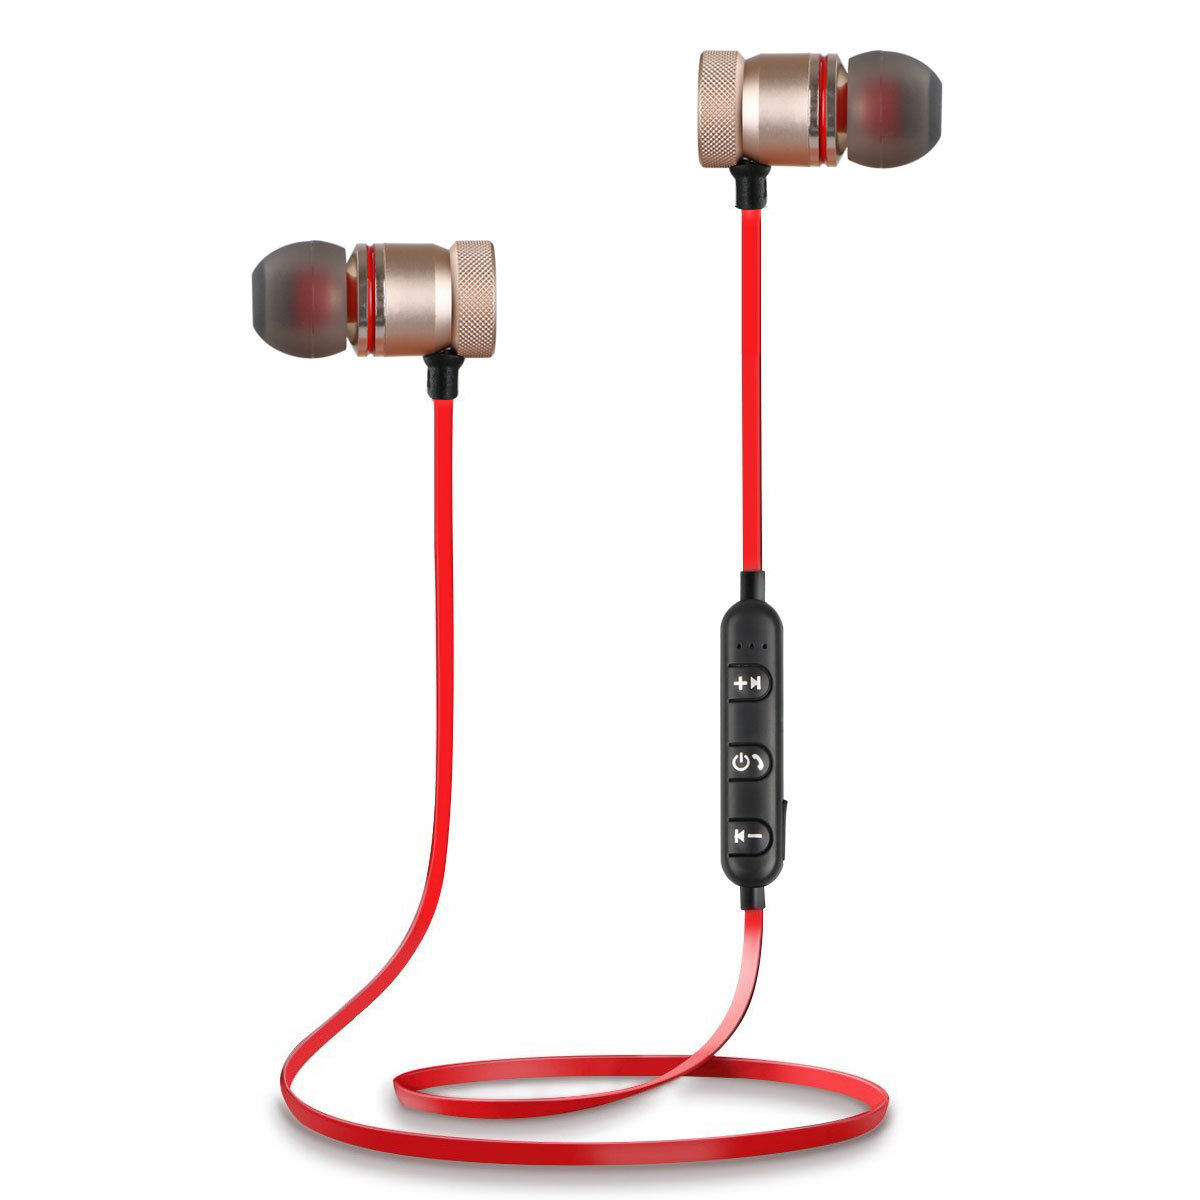 Bluetooth 4 1 Headphones Wireless Magnetic Sports Earphones Earbuds Gym Headset For Iphone Xs Xr X 8 7 6 Plus Samsung S10 S10e S9 S9 Plus Note9 8 5 Walmart Com Walmart Com